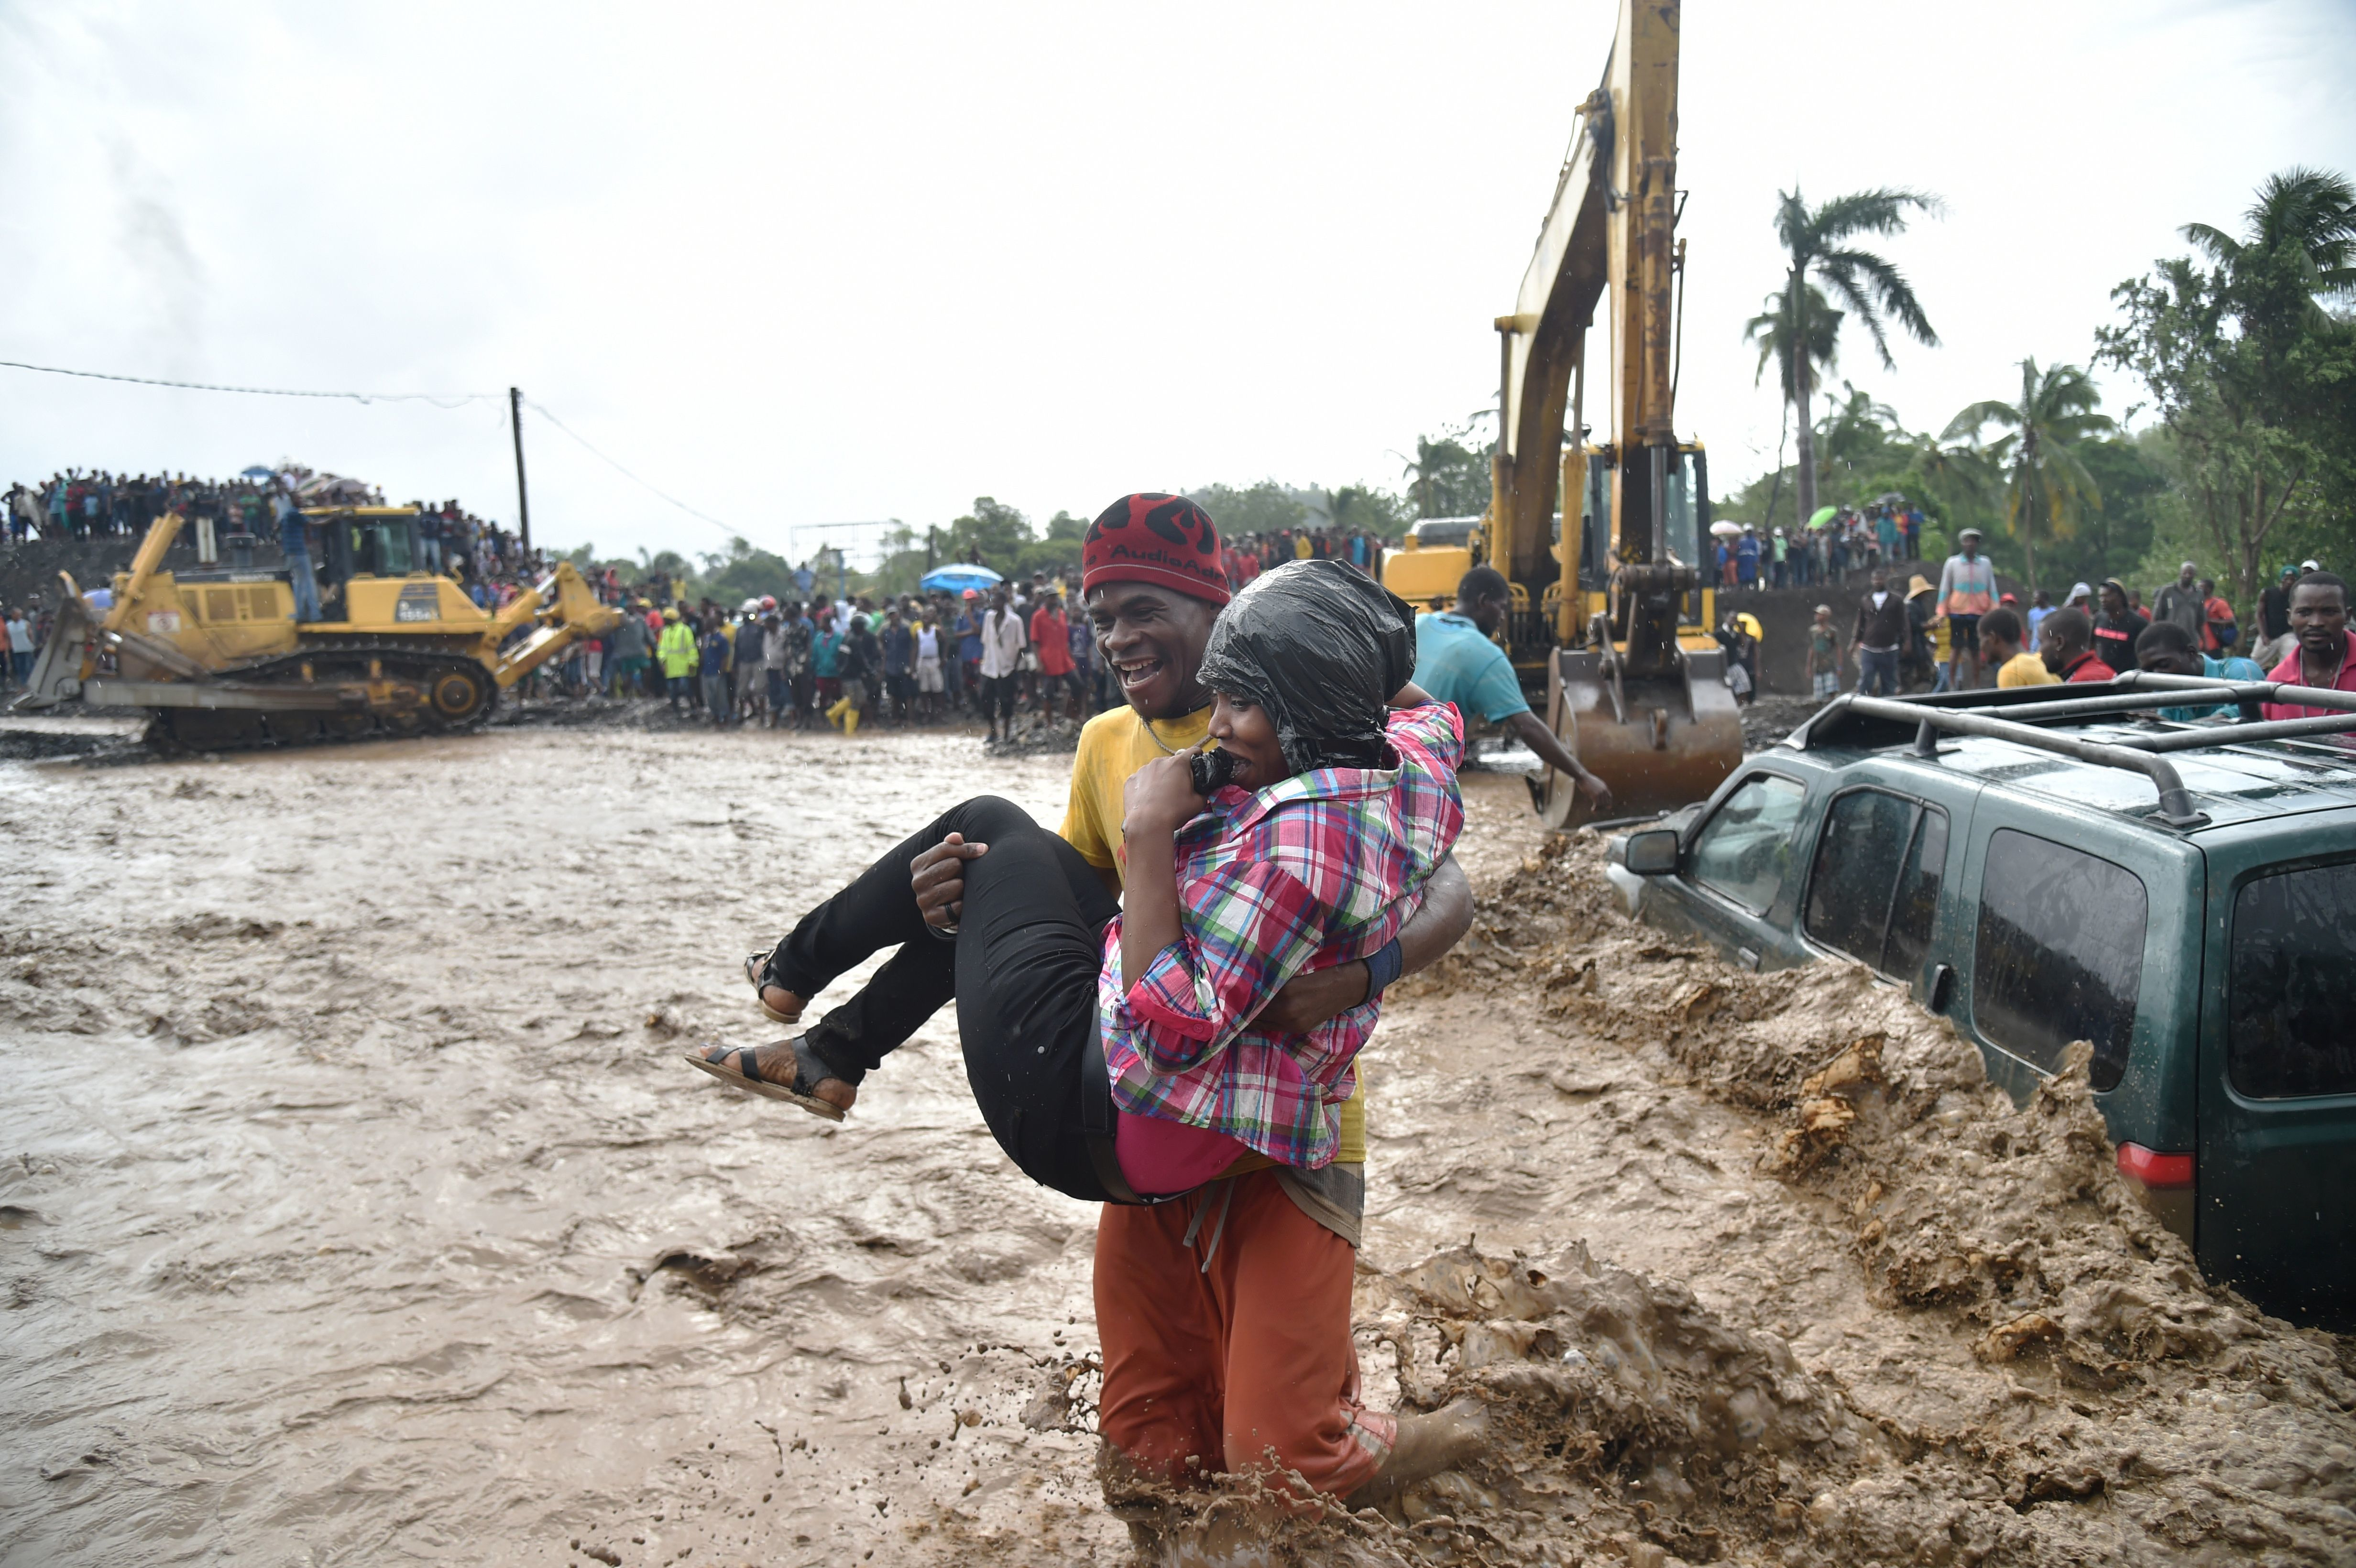 People help each other across the river La Digue in Petit Goave, Haiti, on Wednesday, a day after Hurricane Matthew raked the island nation. (Photo by Hector Retamal/AFP/Getty Images)